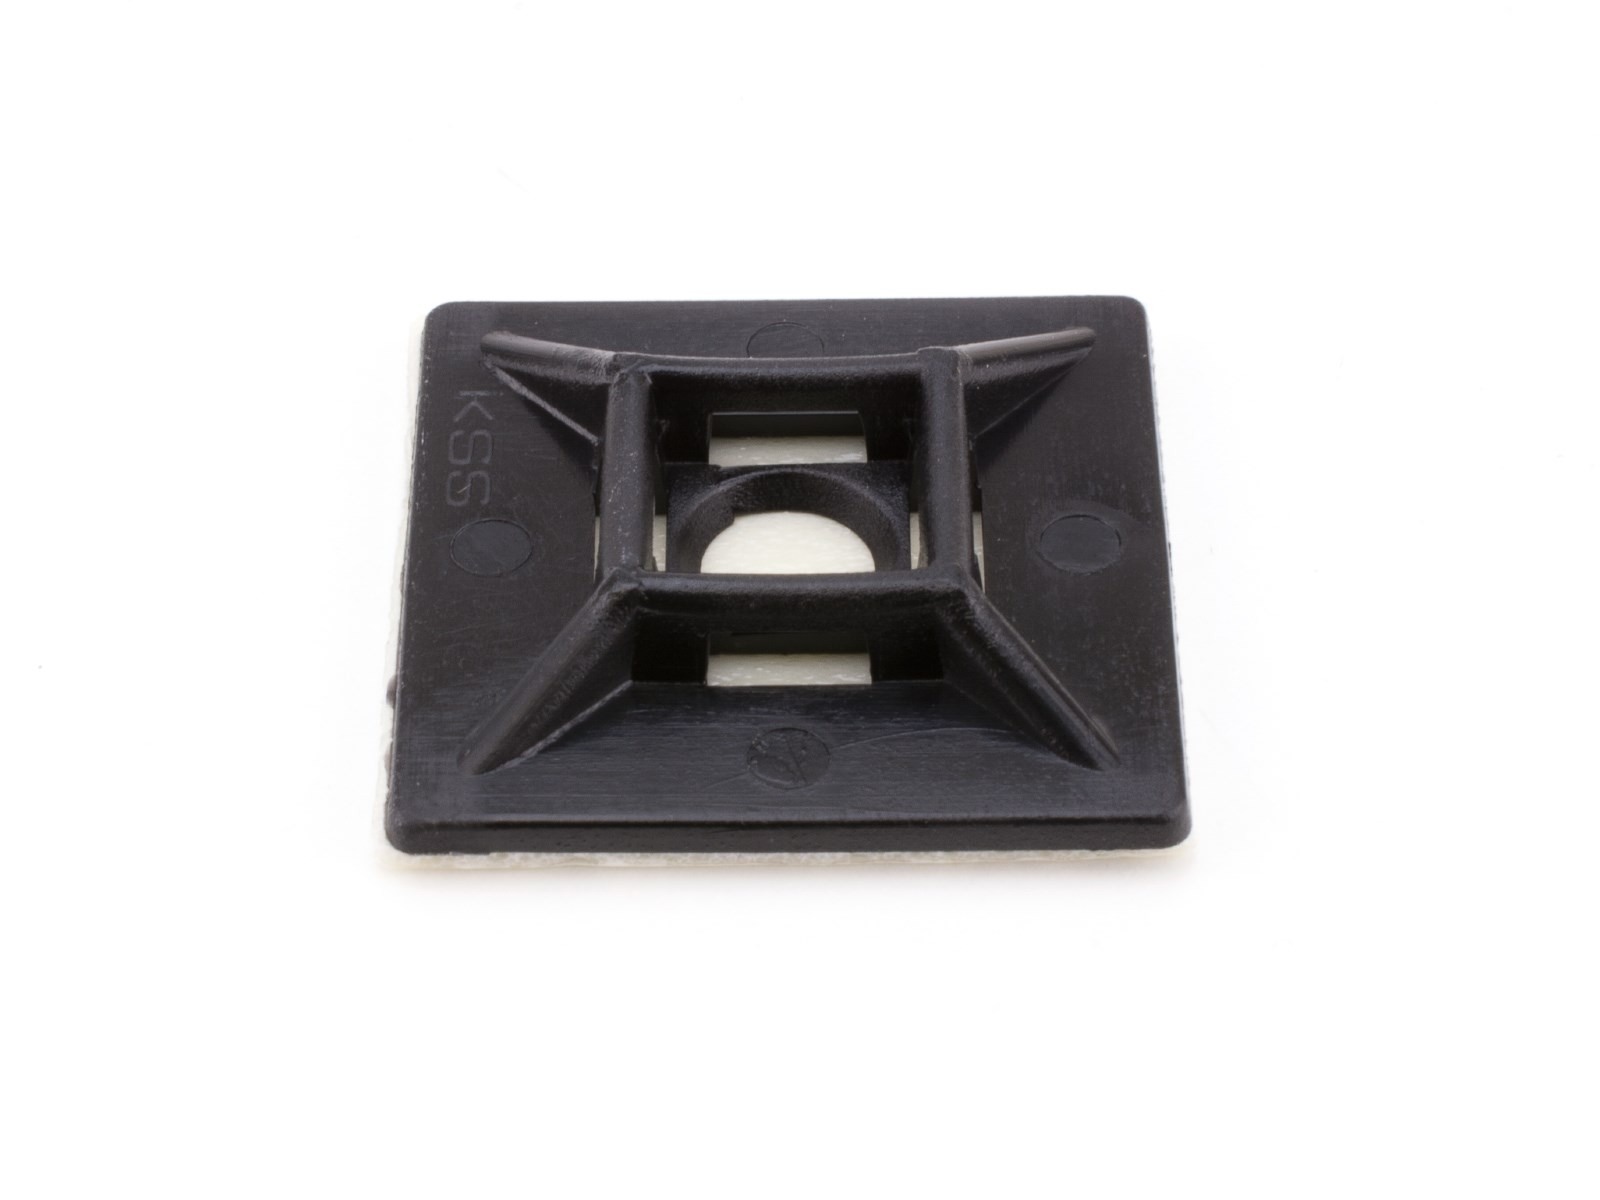 1 Inch Black Square Adhesive Tie Mount 100 Pack Secure